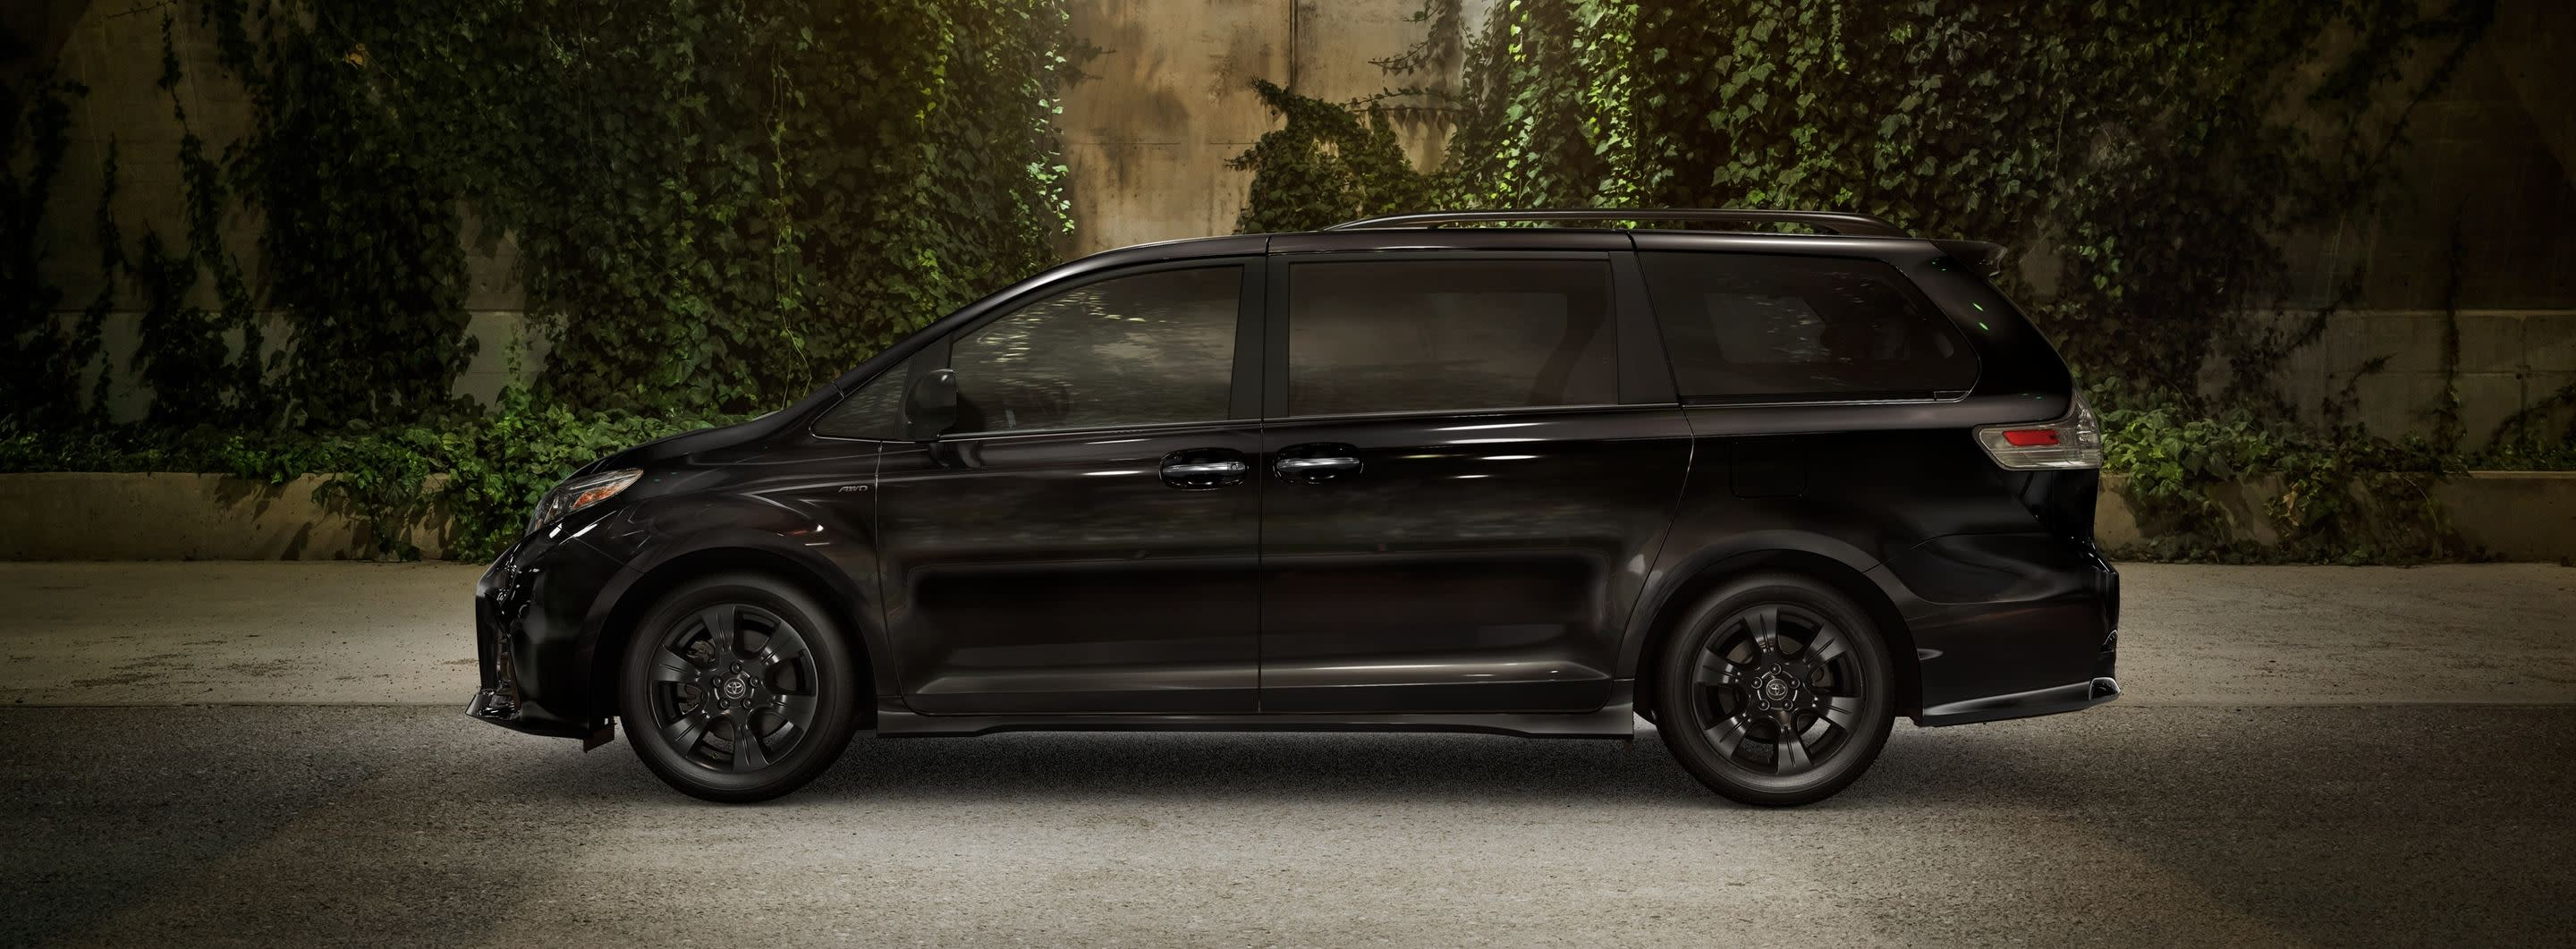 2020 Toyota Sienna for Sale near Columbia, MO